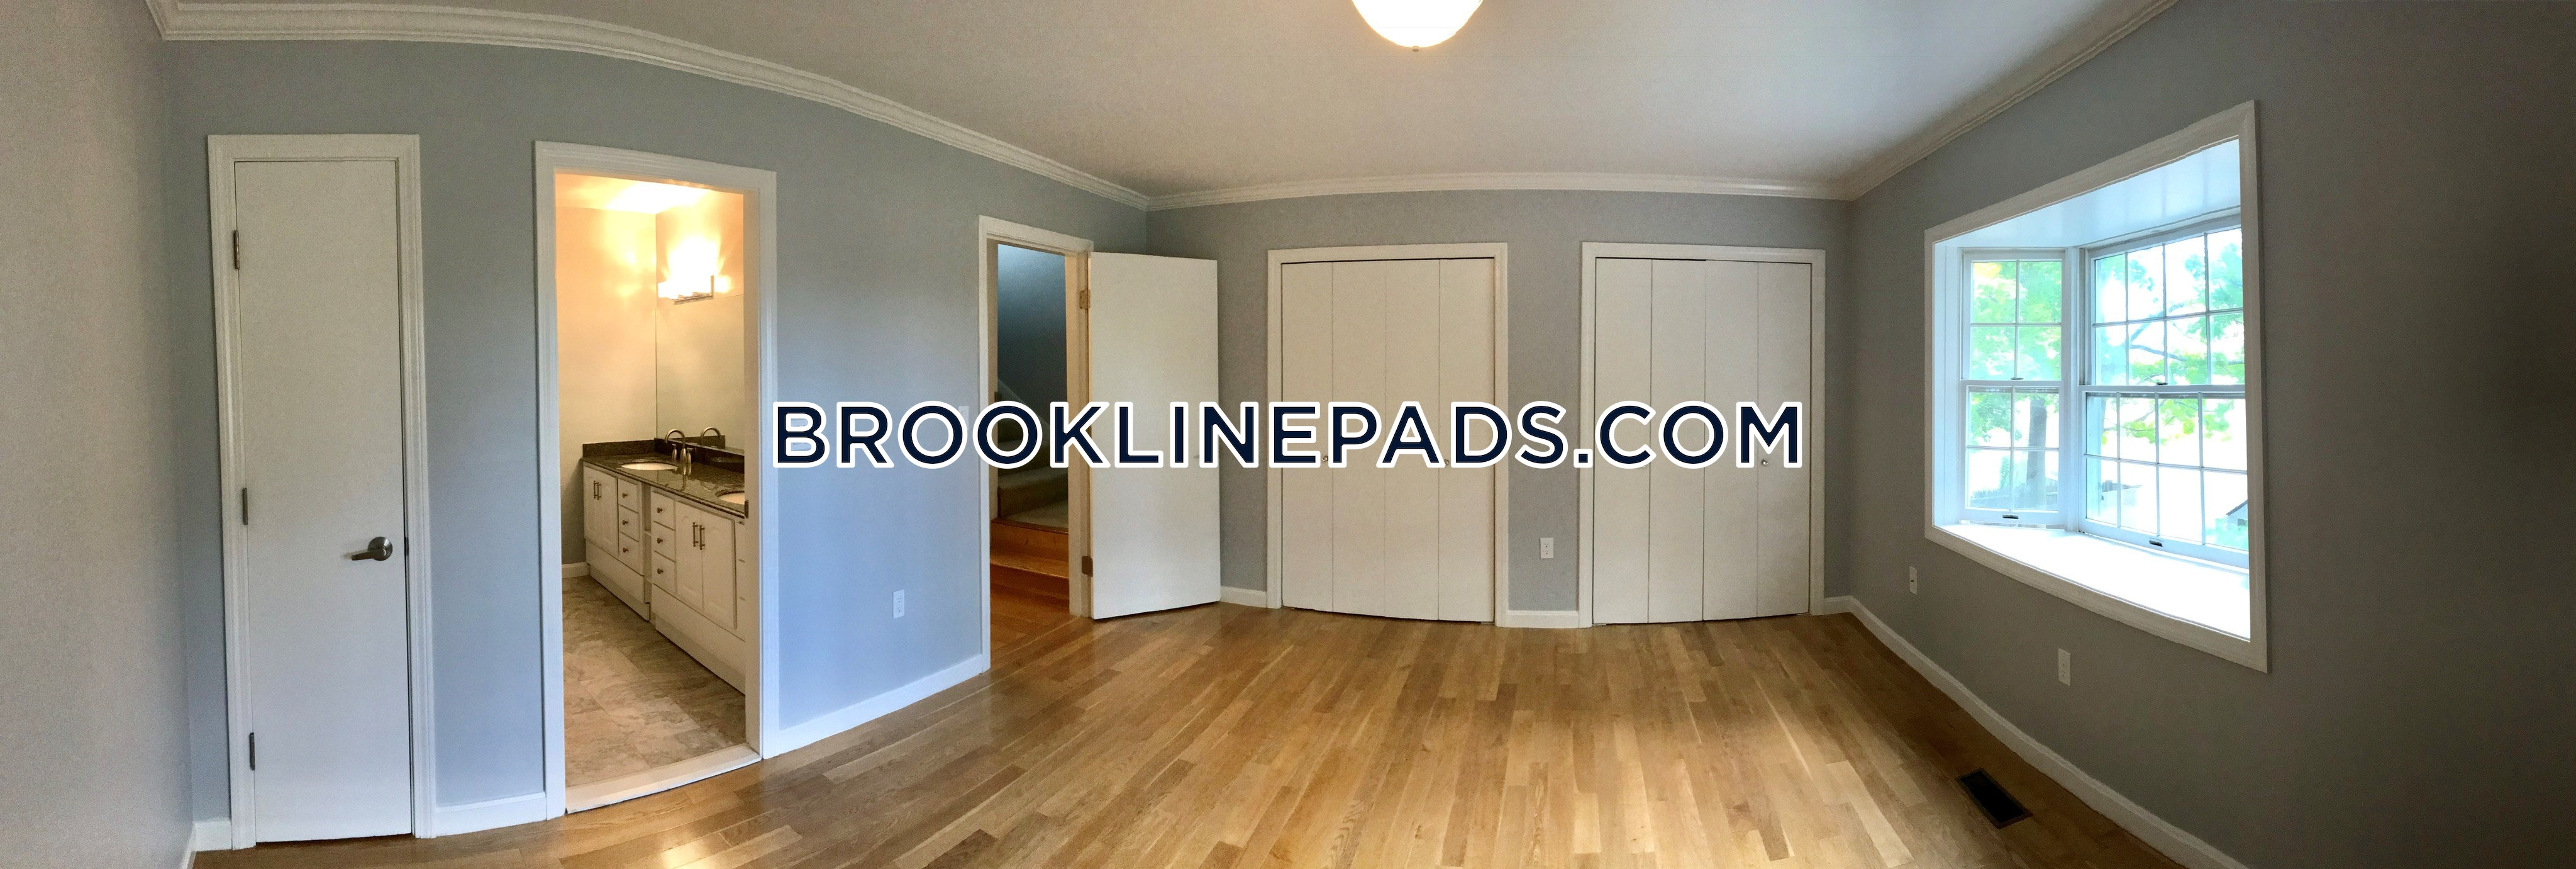 Back Bay Apartments Brookline Apartment For Rent 4 Bedrooms 3 5 Baths Boston University 000